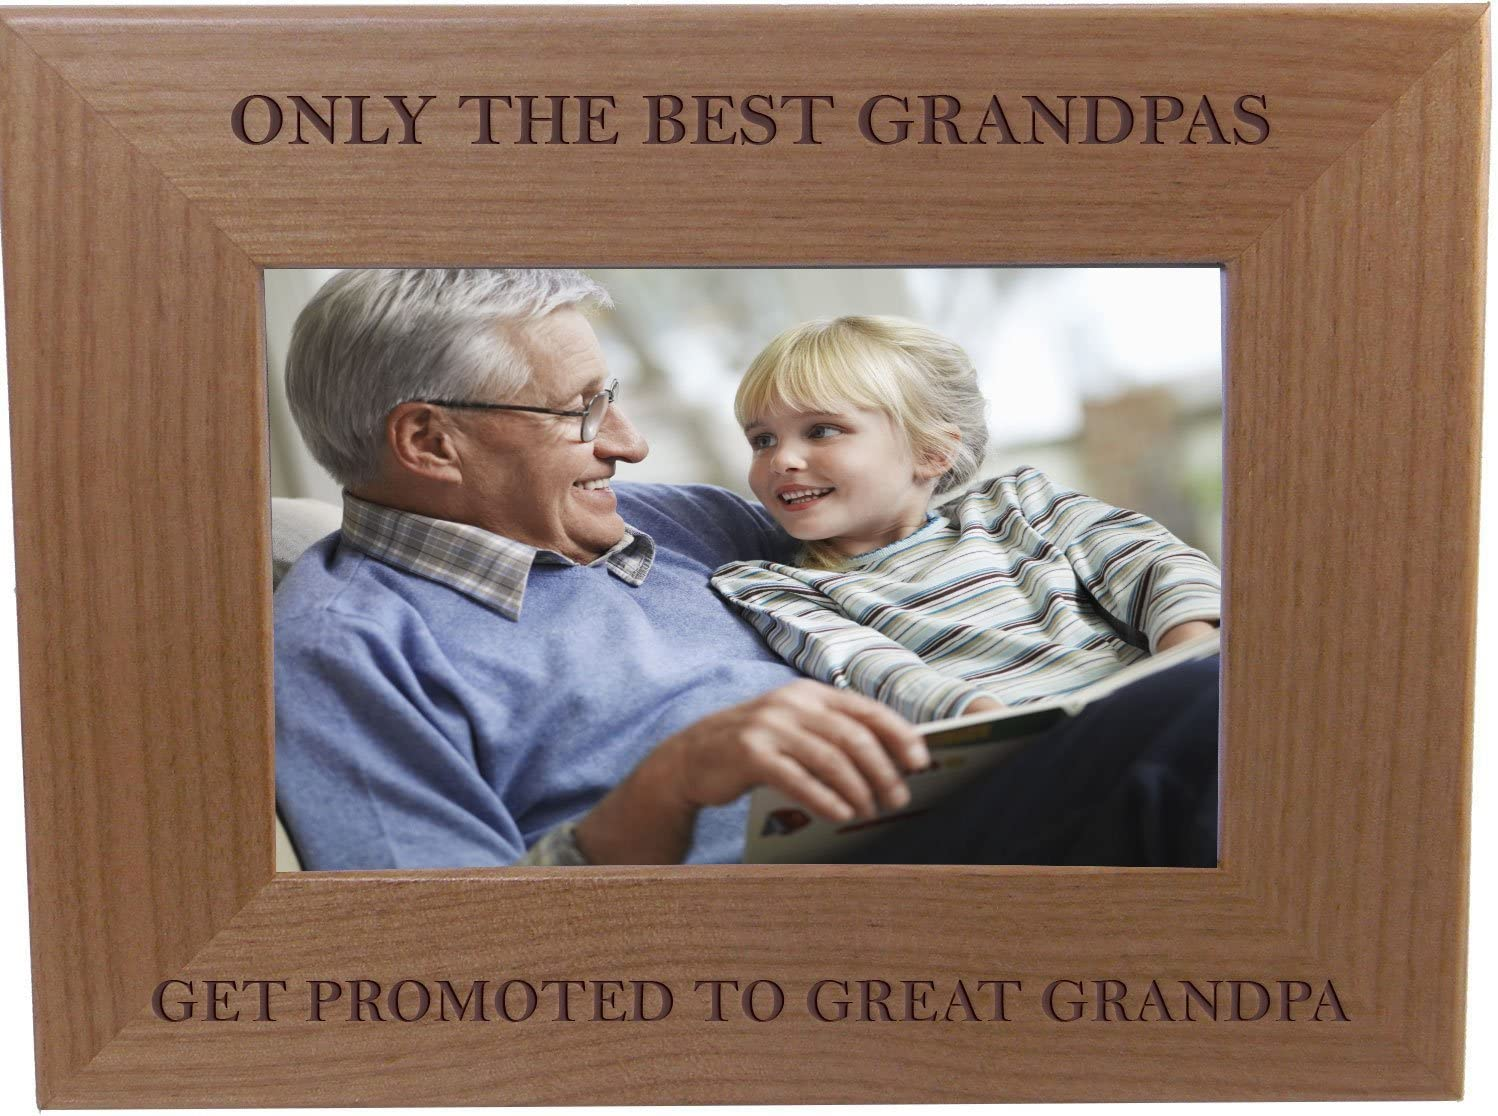 CustomGiftsNow Only The Best Beauty products Grandpas Finally resale start to Get Great Promoted Gran